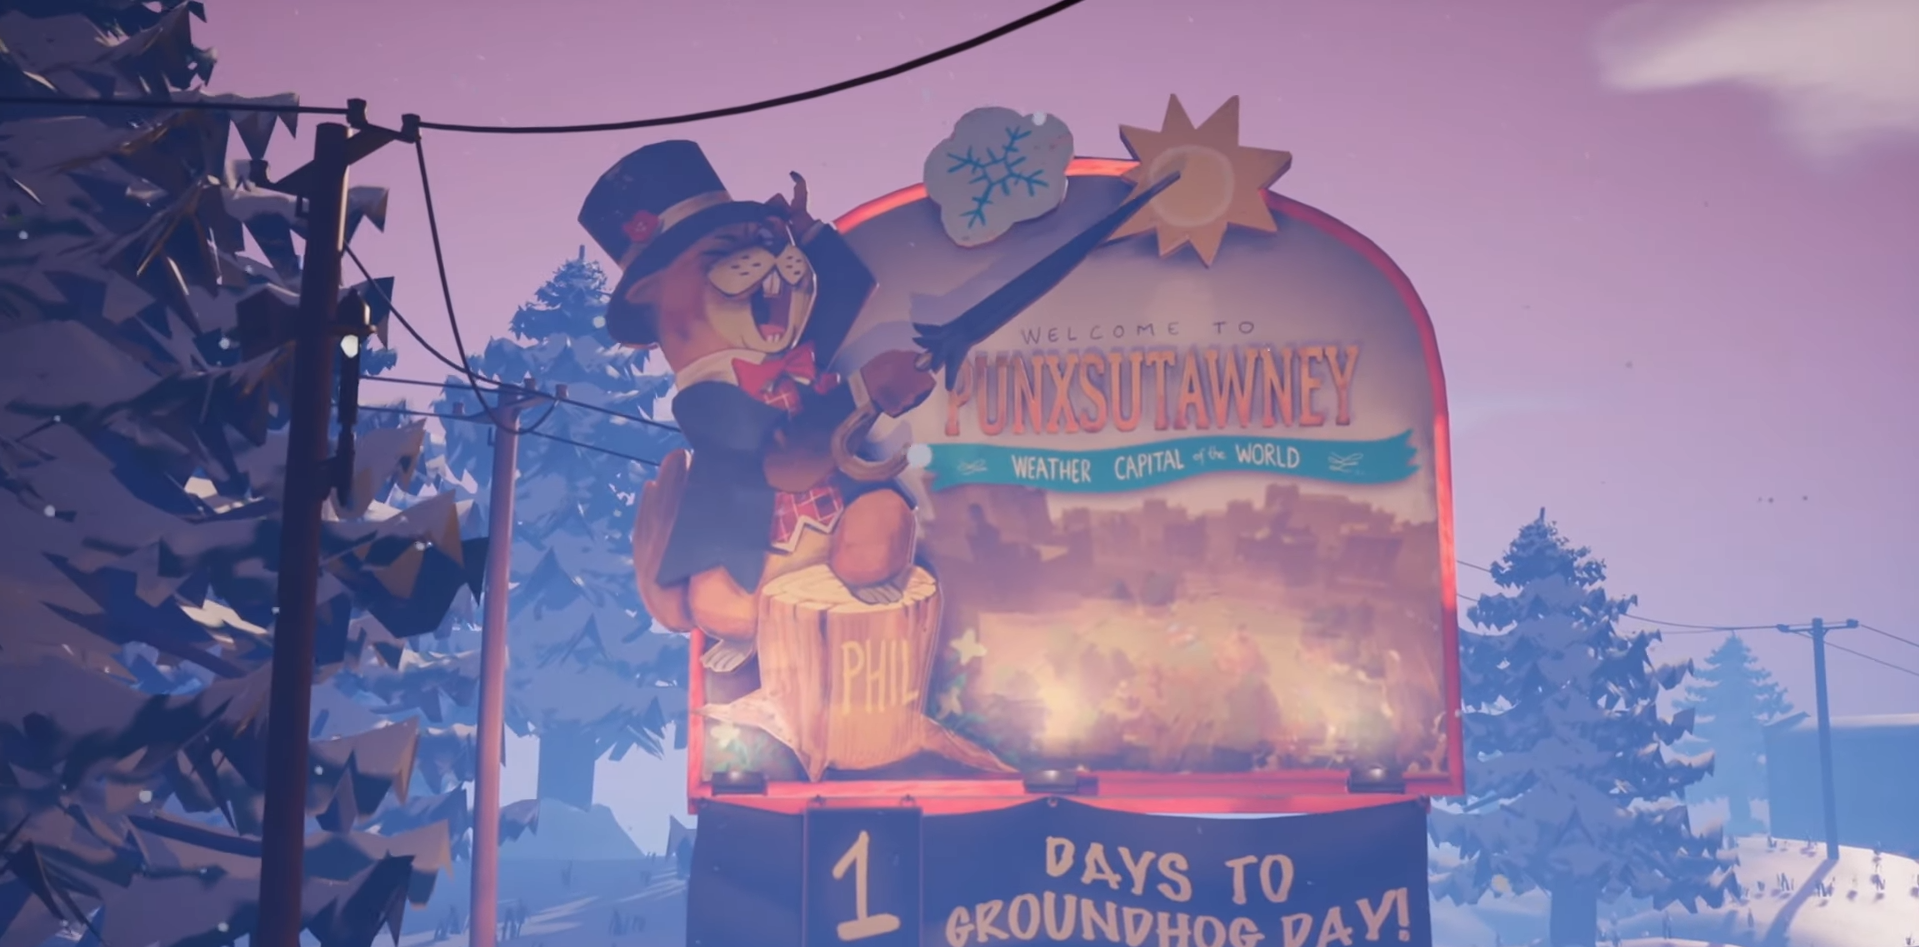 Groundhog Day: Like Father Like Son Is A PSVR GameAnd A Sequel To The Bill Murray Film